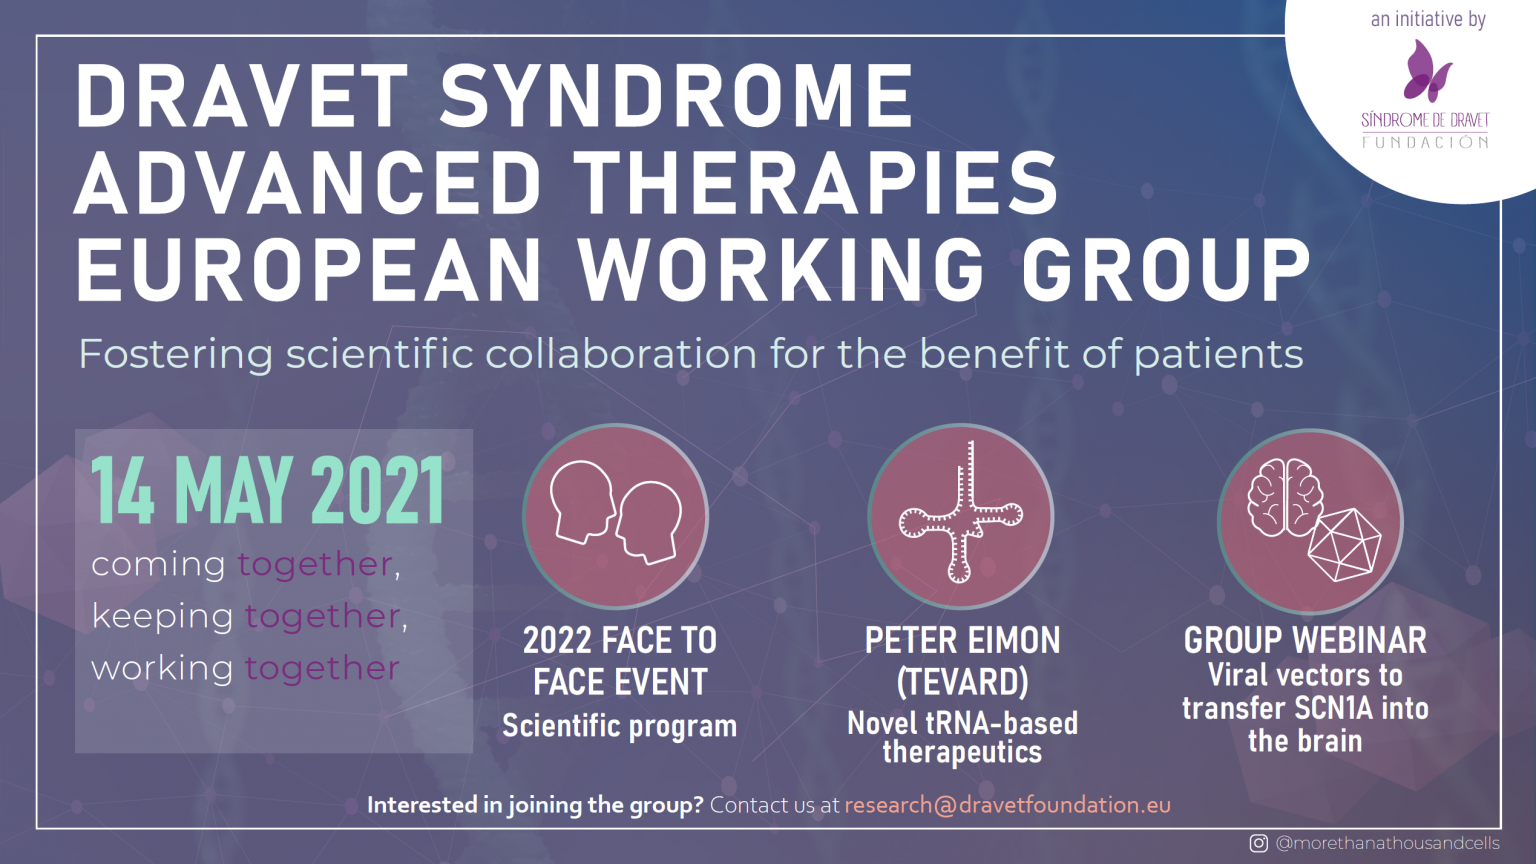 Dravet Syndrome Advanced Therapies European Working Group meeting 4